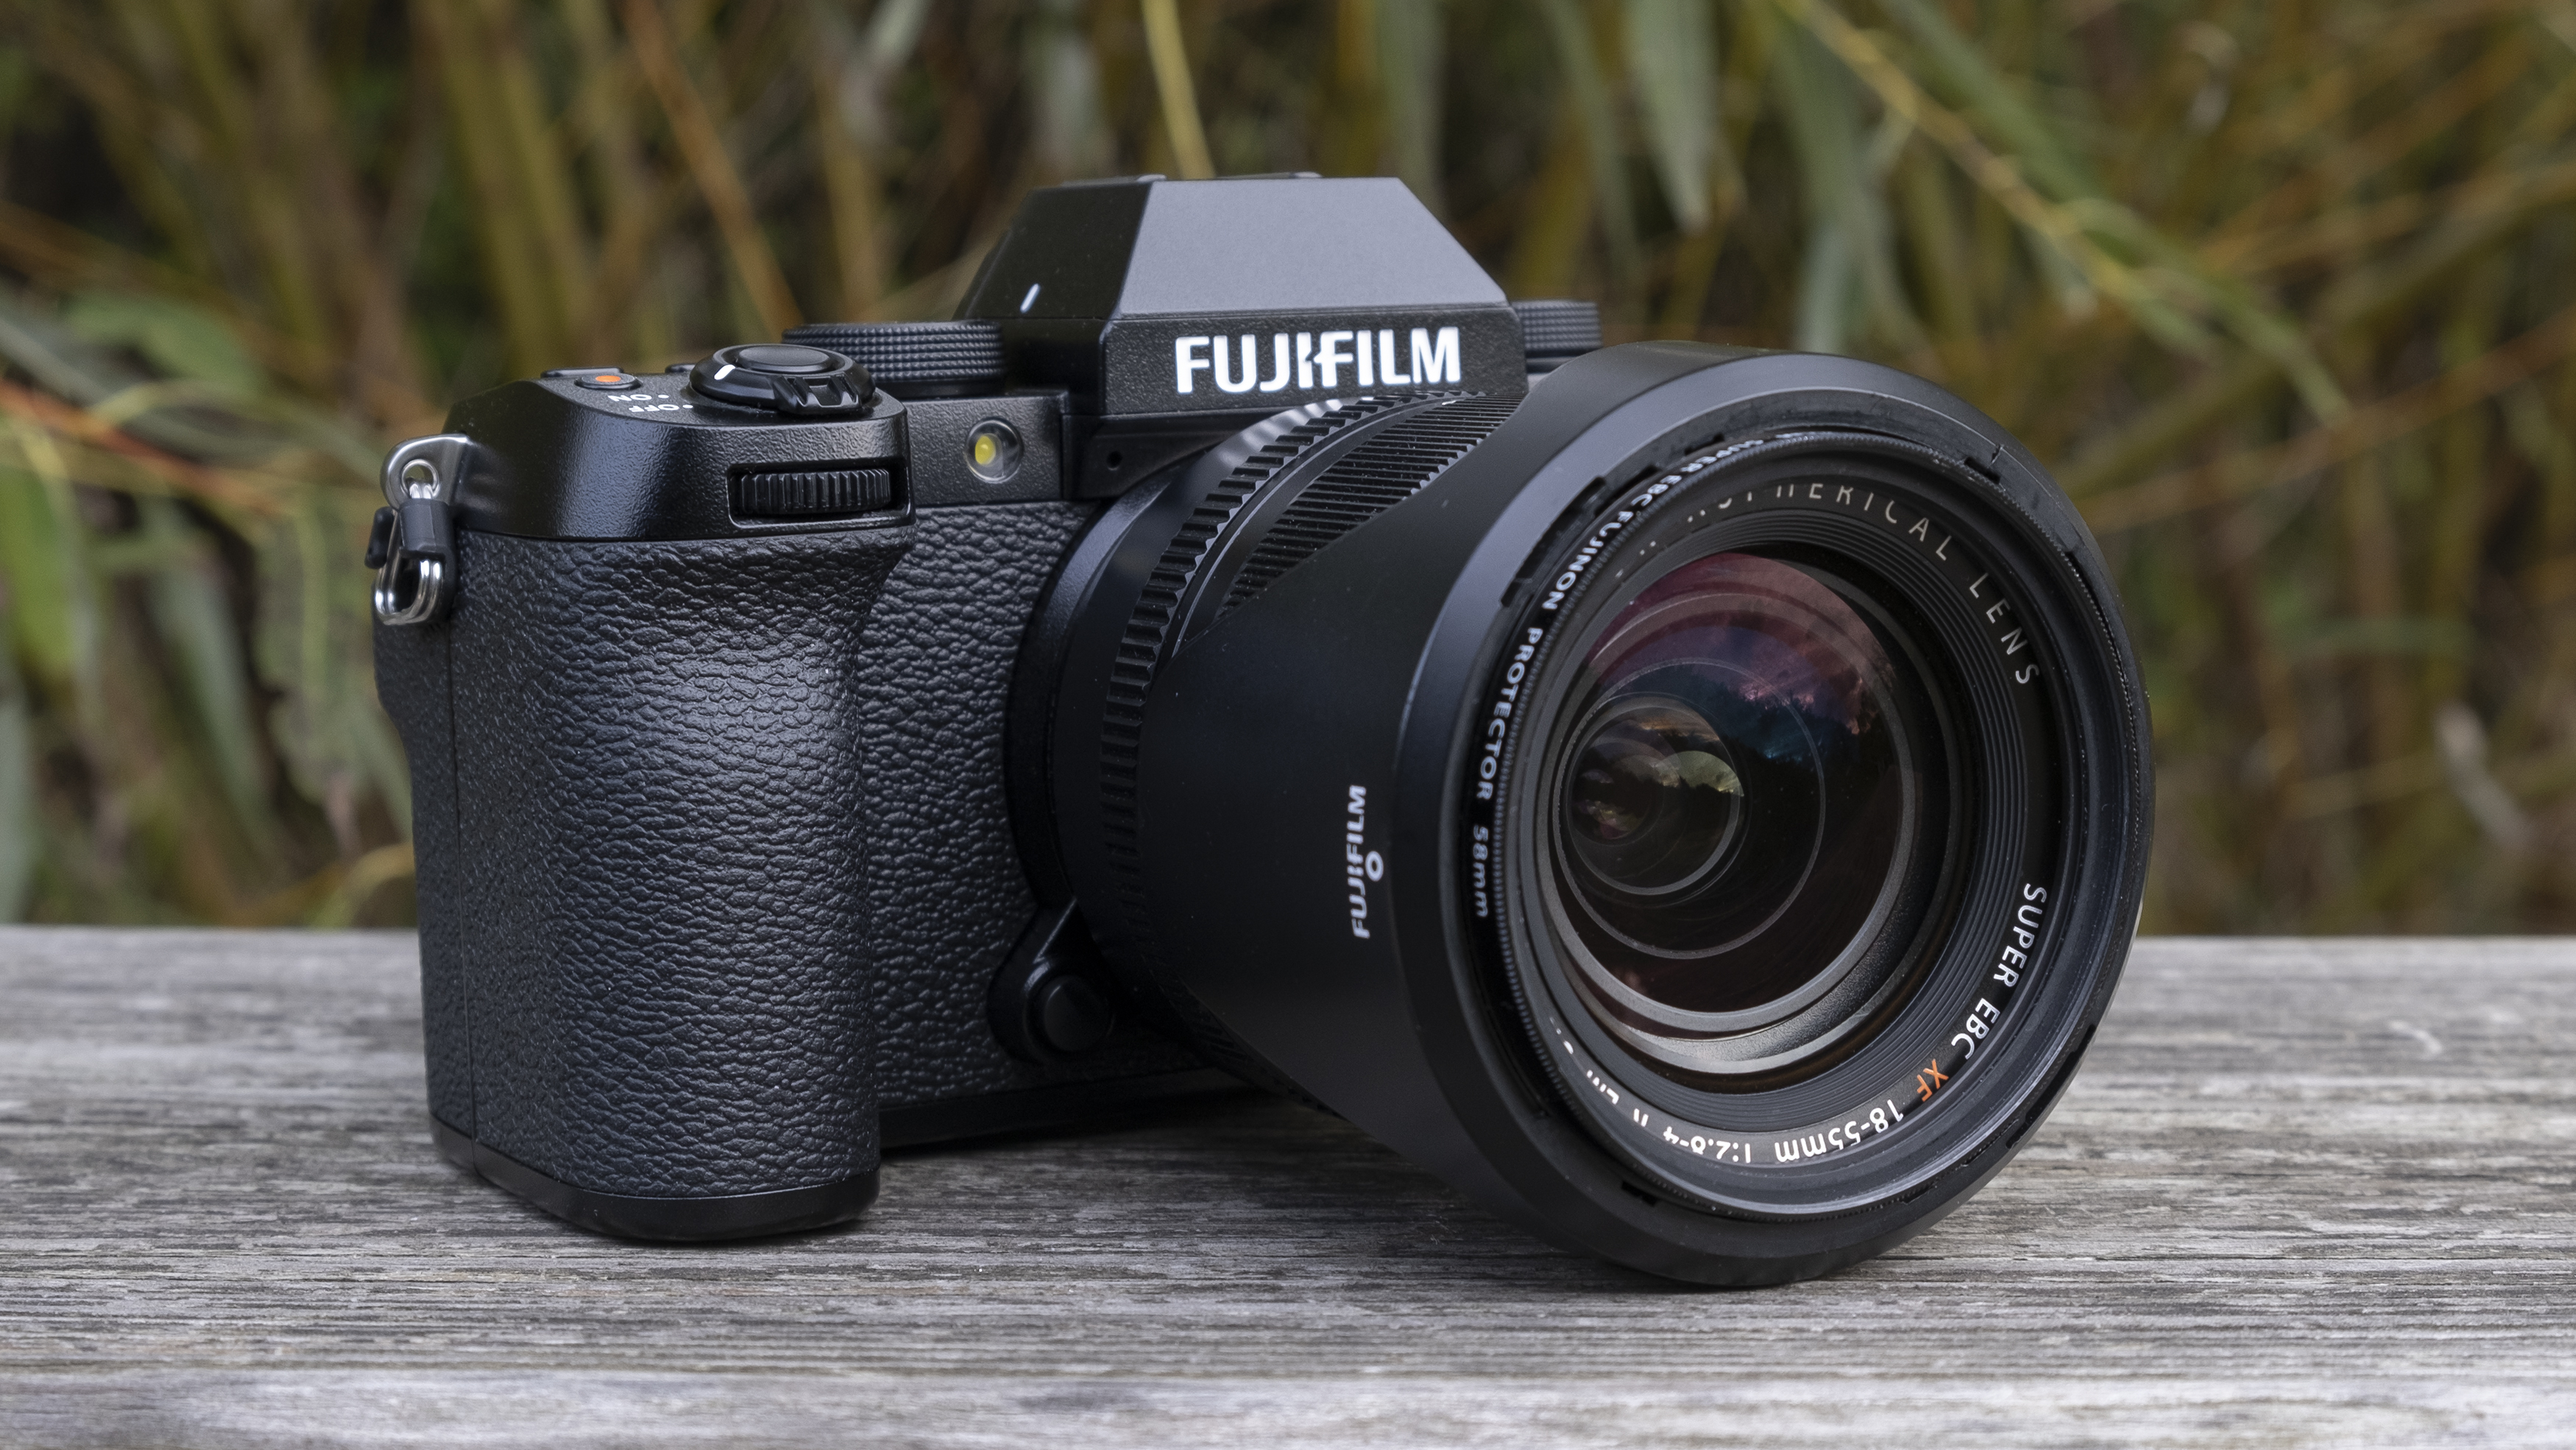 The Fujifilm X-S10, the best vlogging camera you can buy right now, on a bench